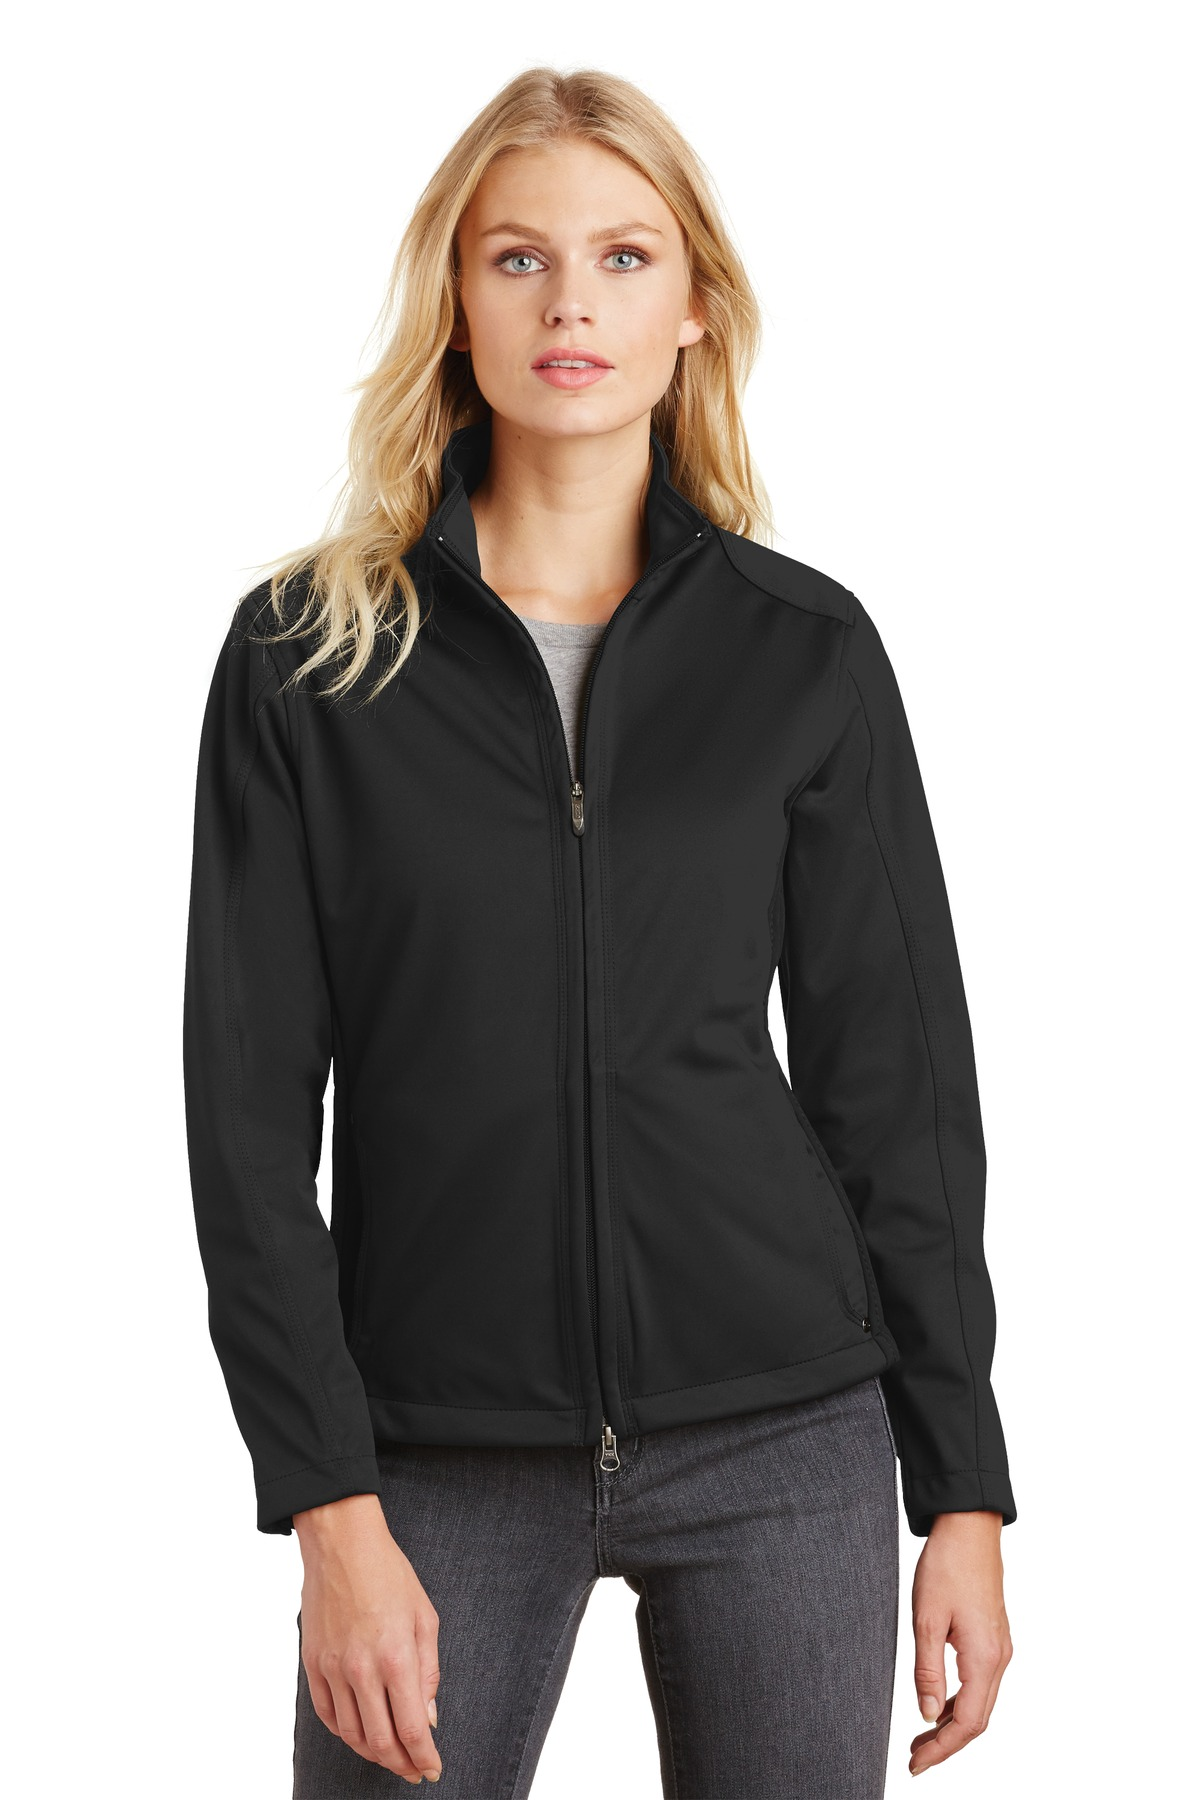 OGIO ®  - Ladies Bombshell Jacket. LOG500